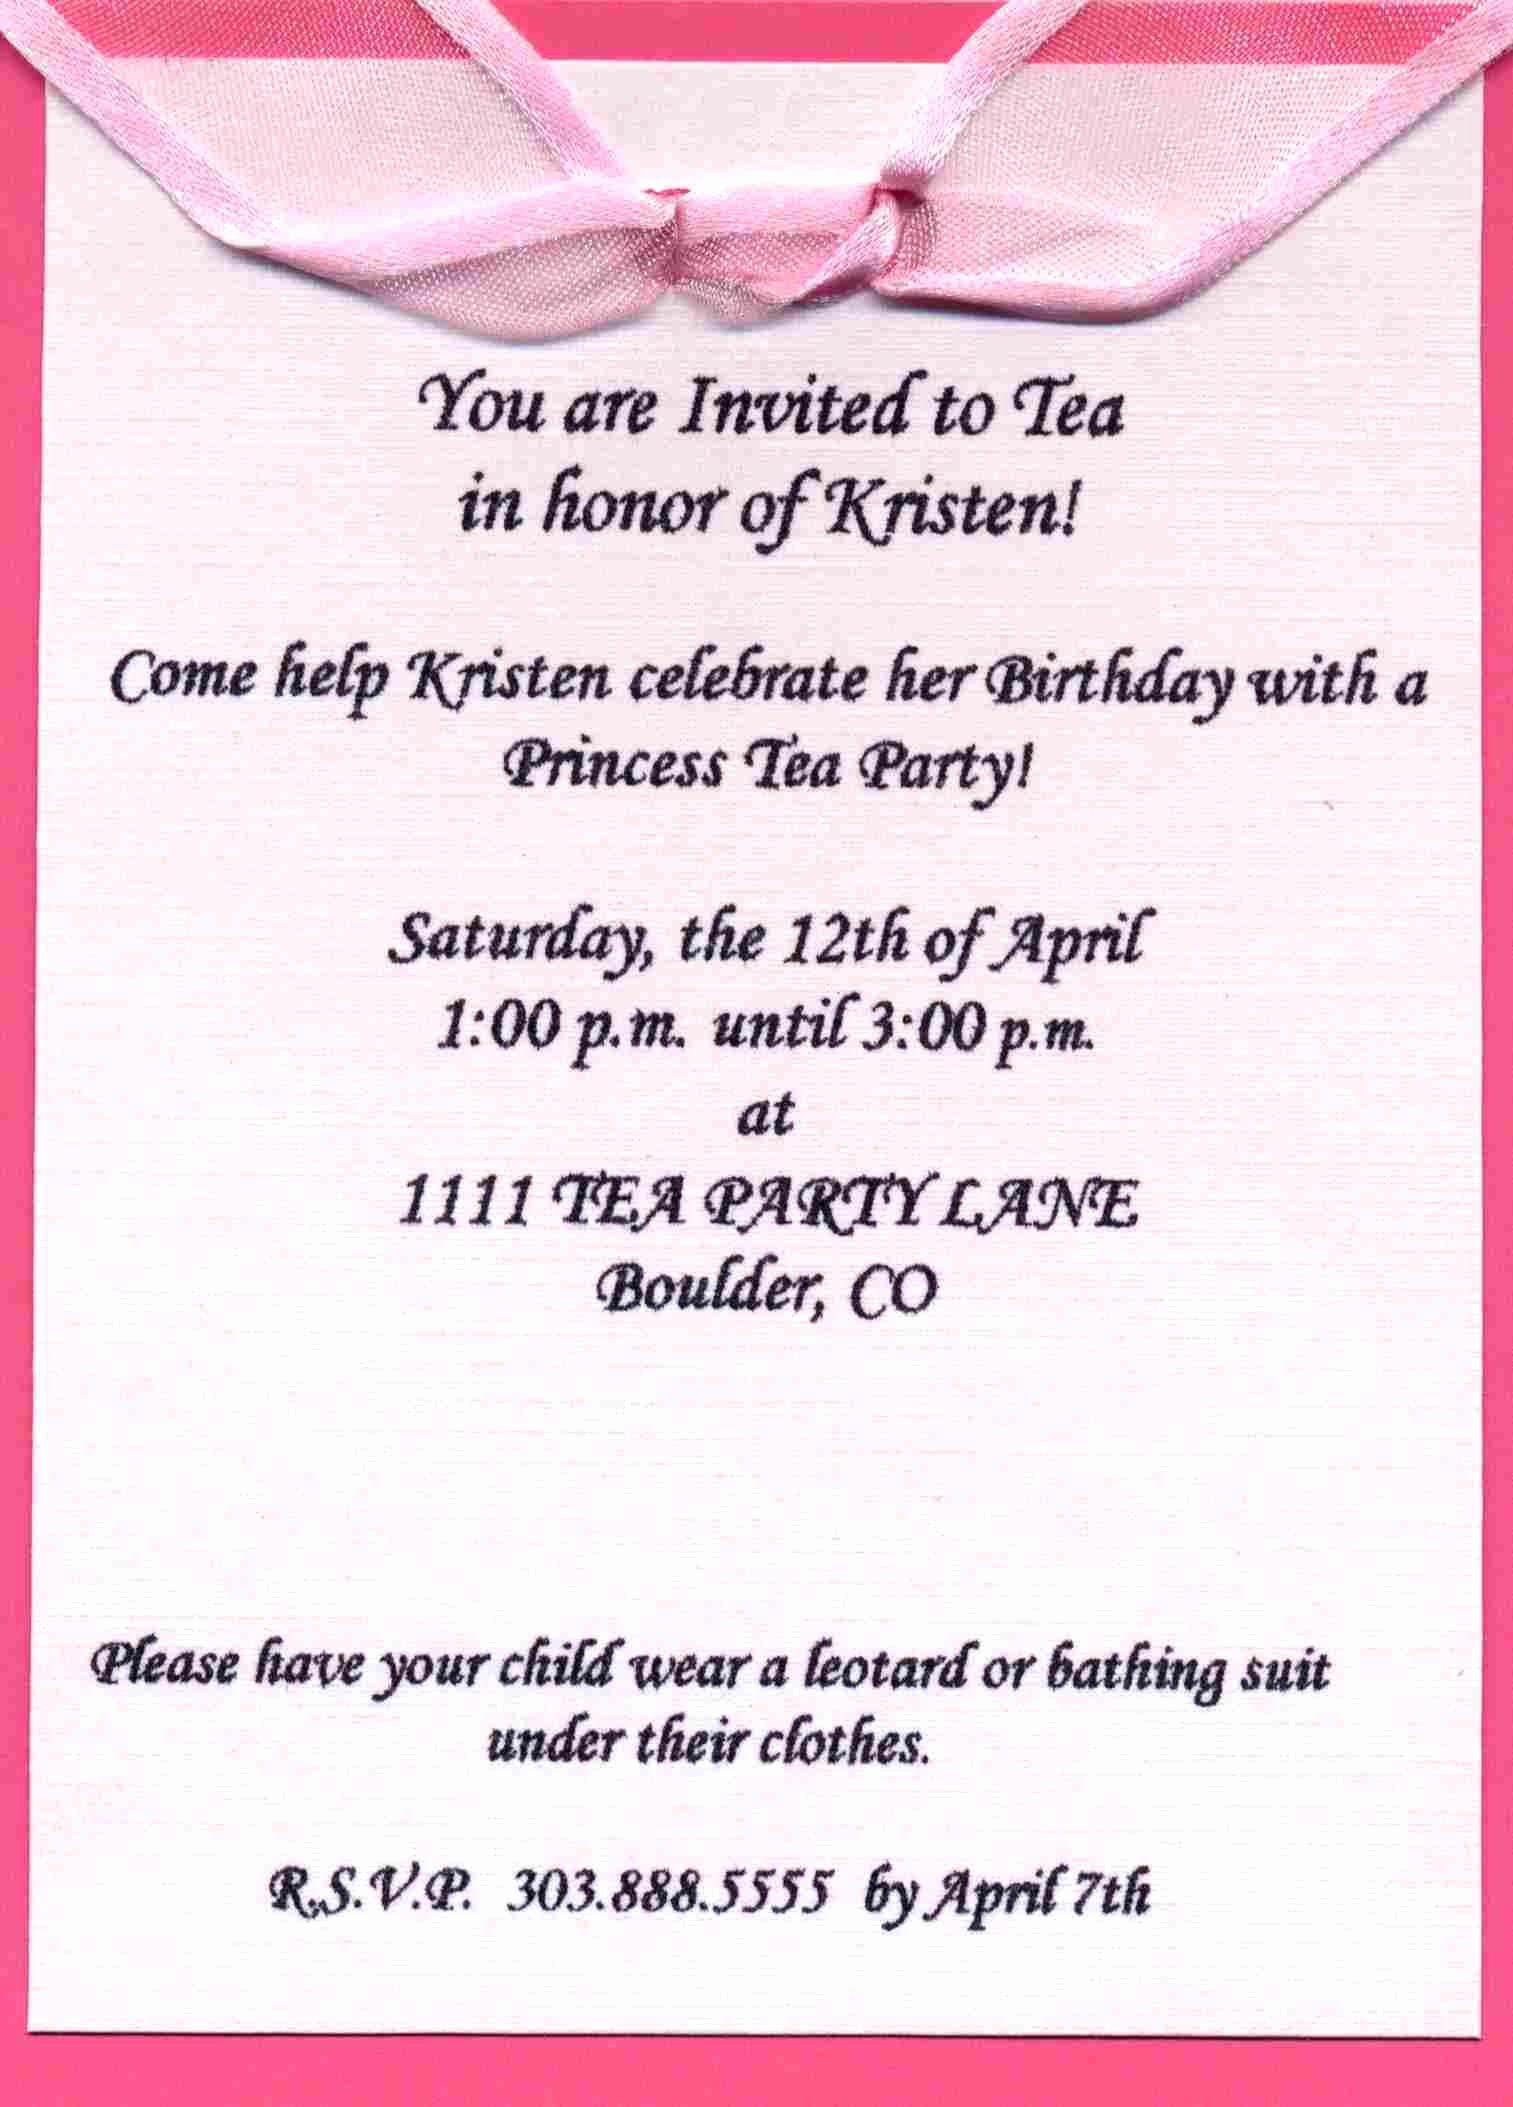 Email Party Invite Template Lovely Email Party Invitations